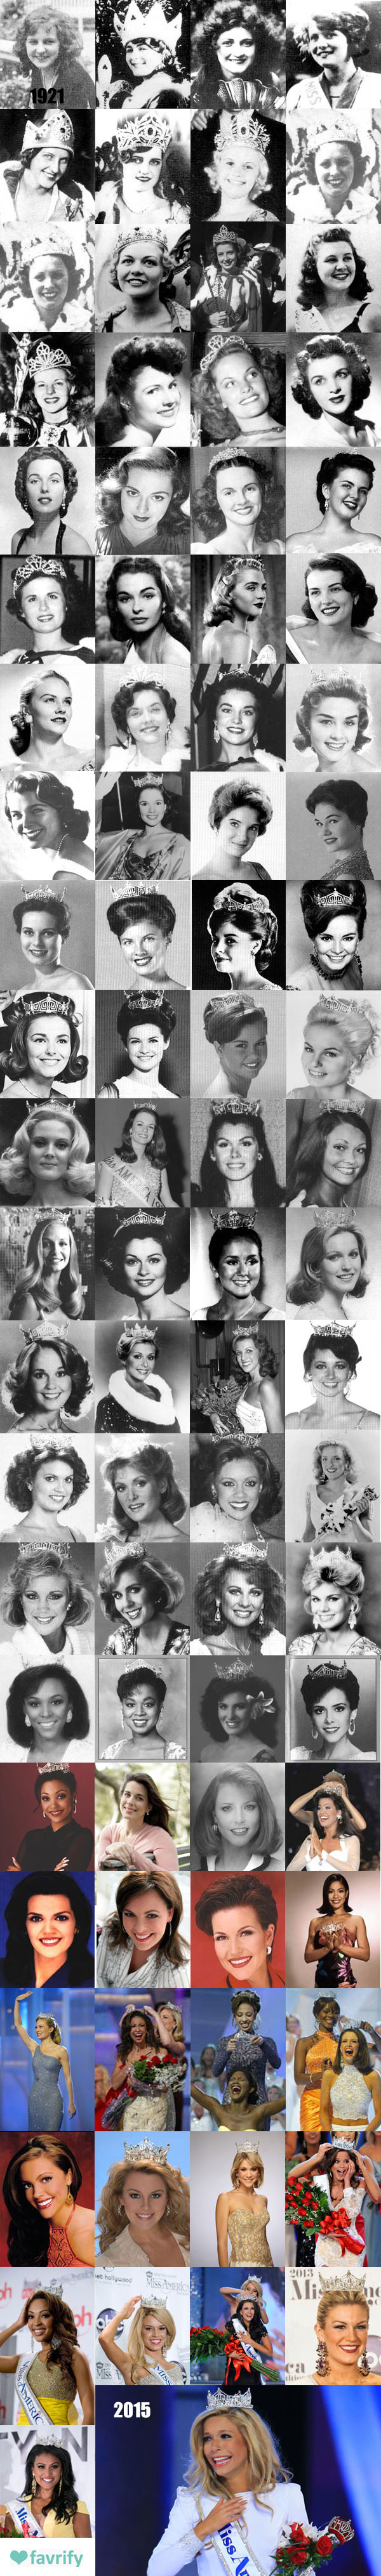 every miss america 1921-2015